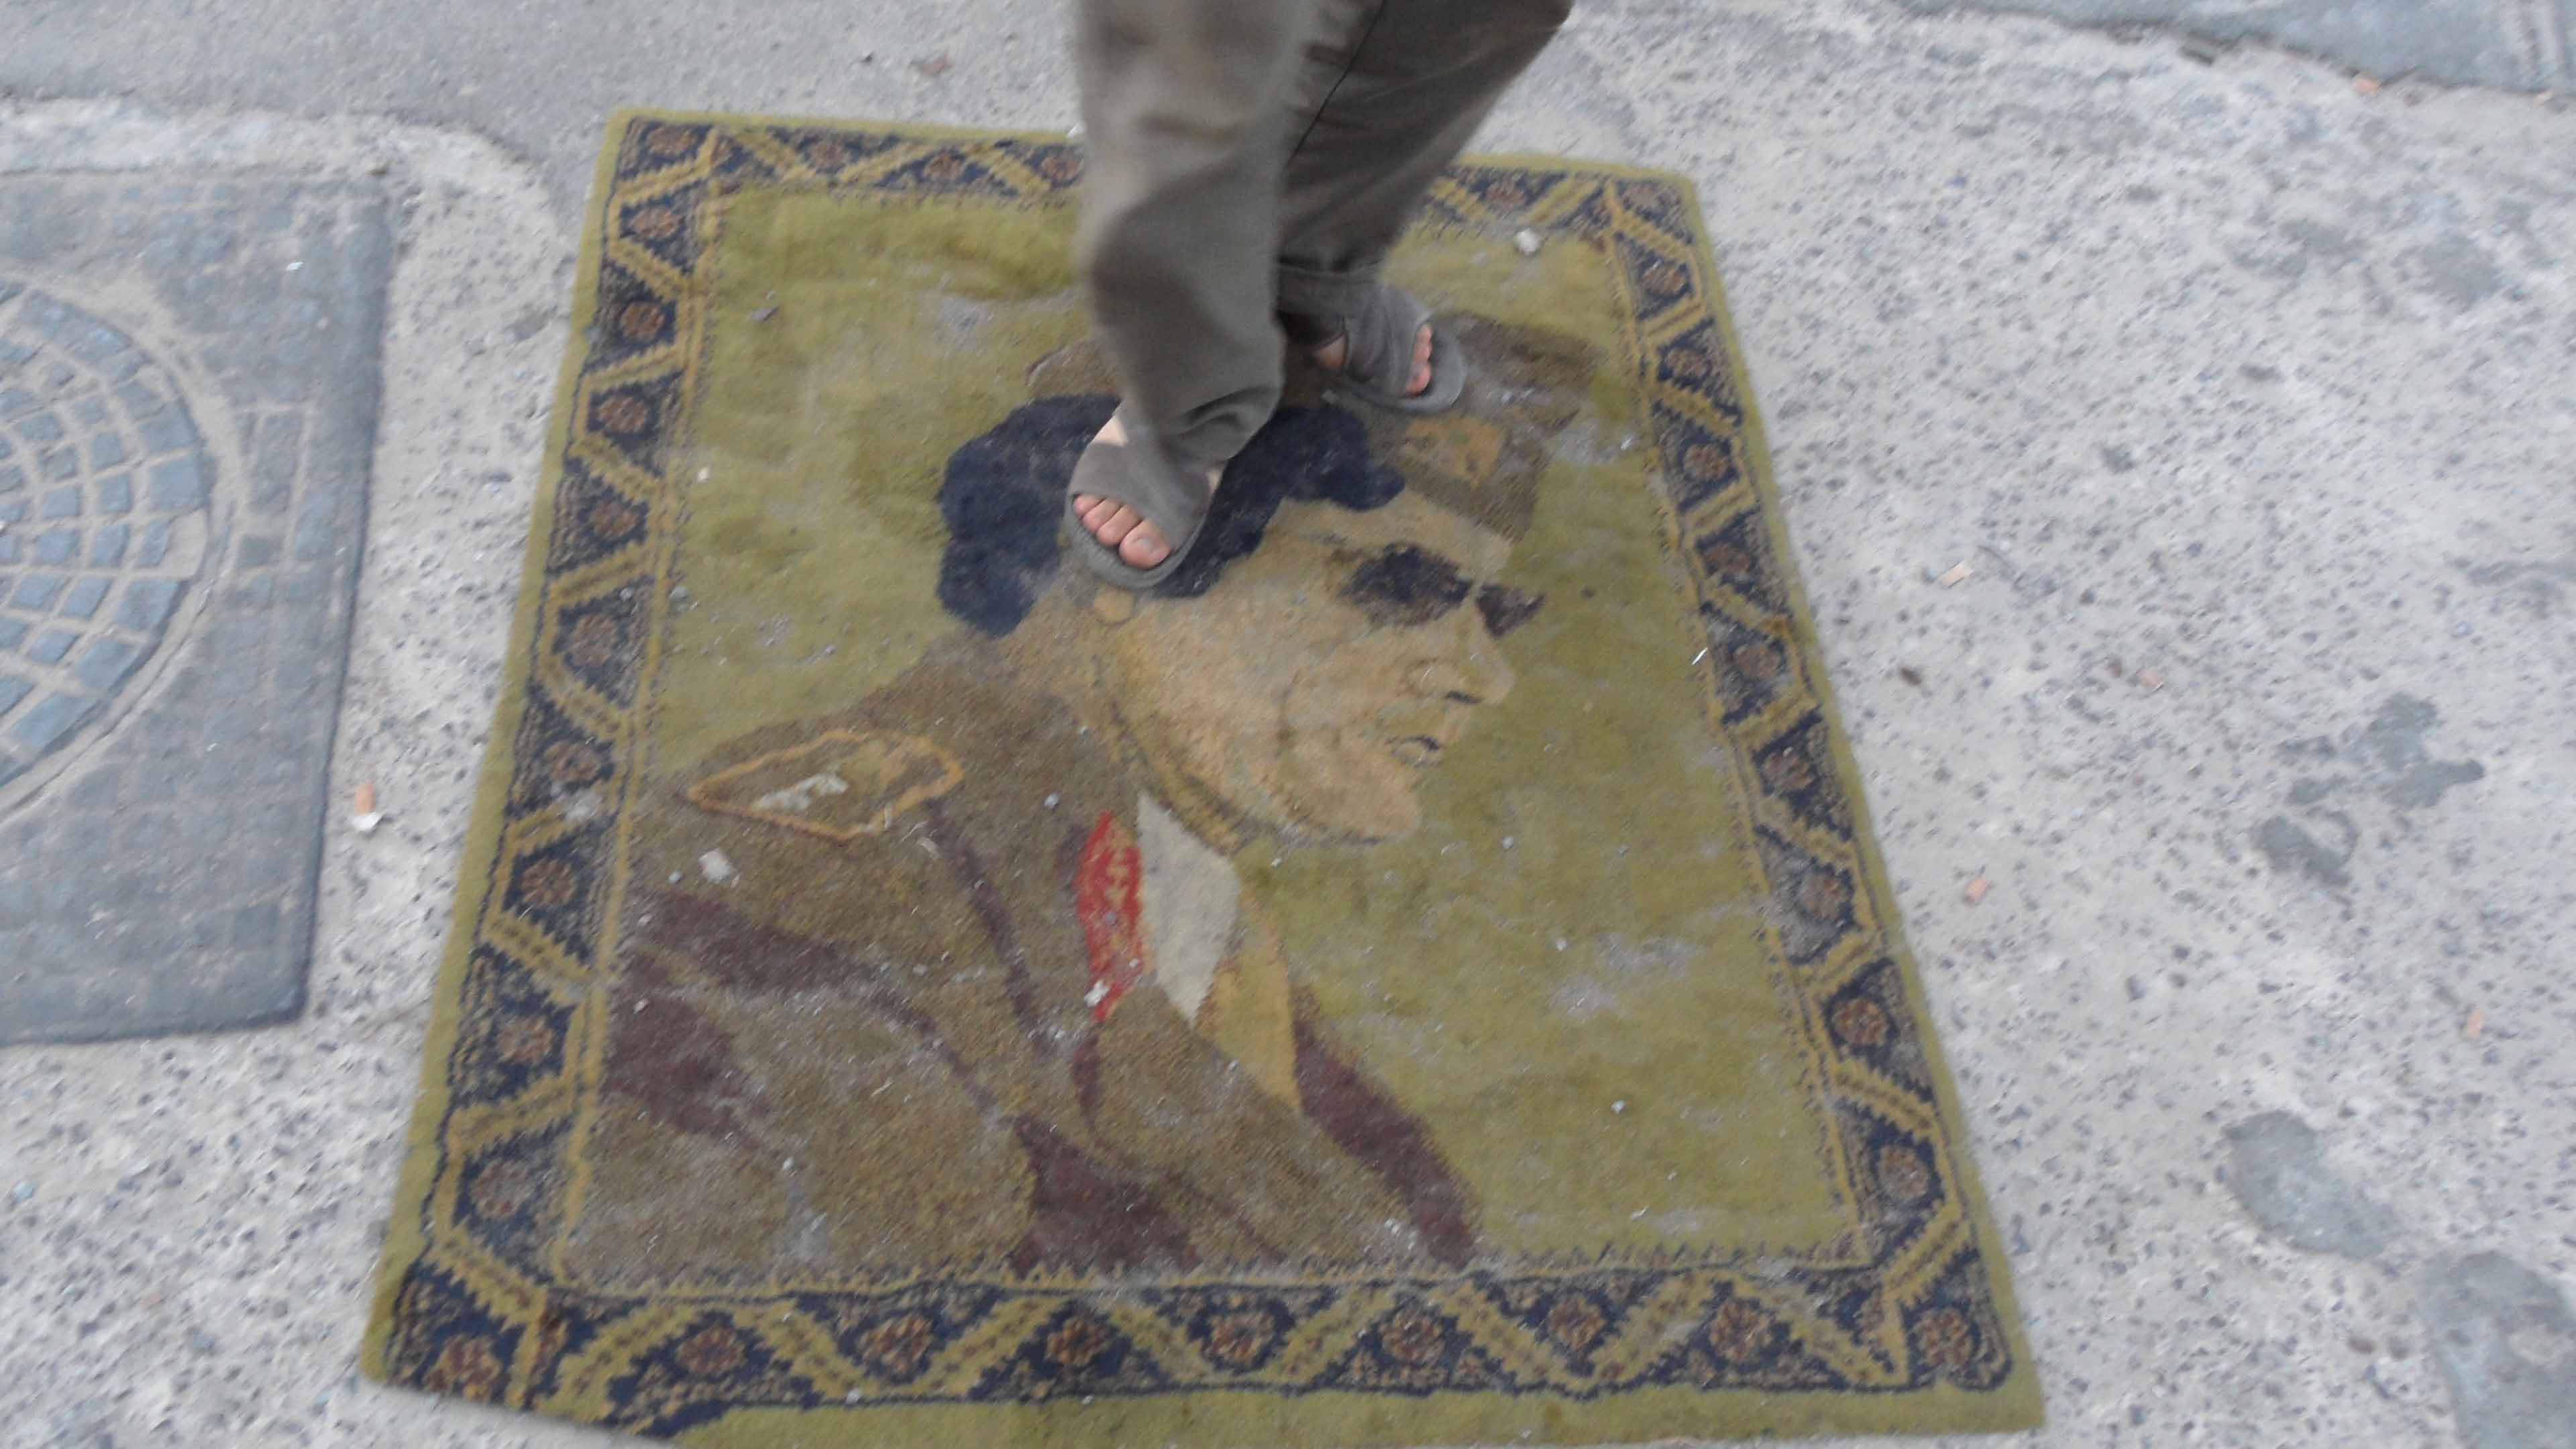 Stepping on Gadhafi&#039;s face